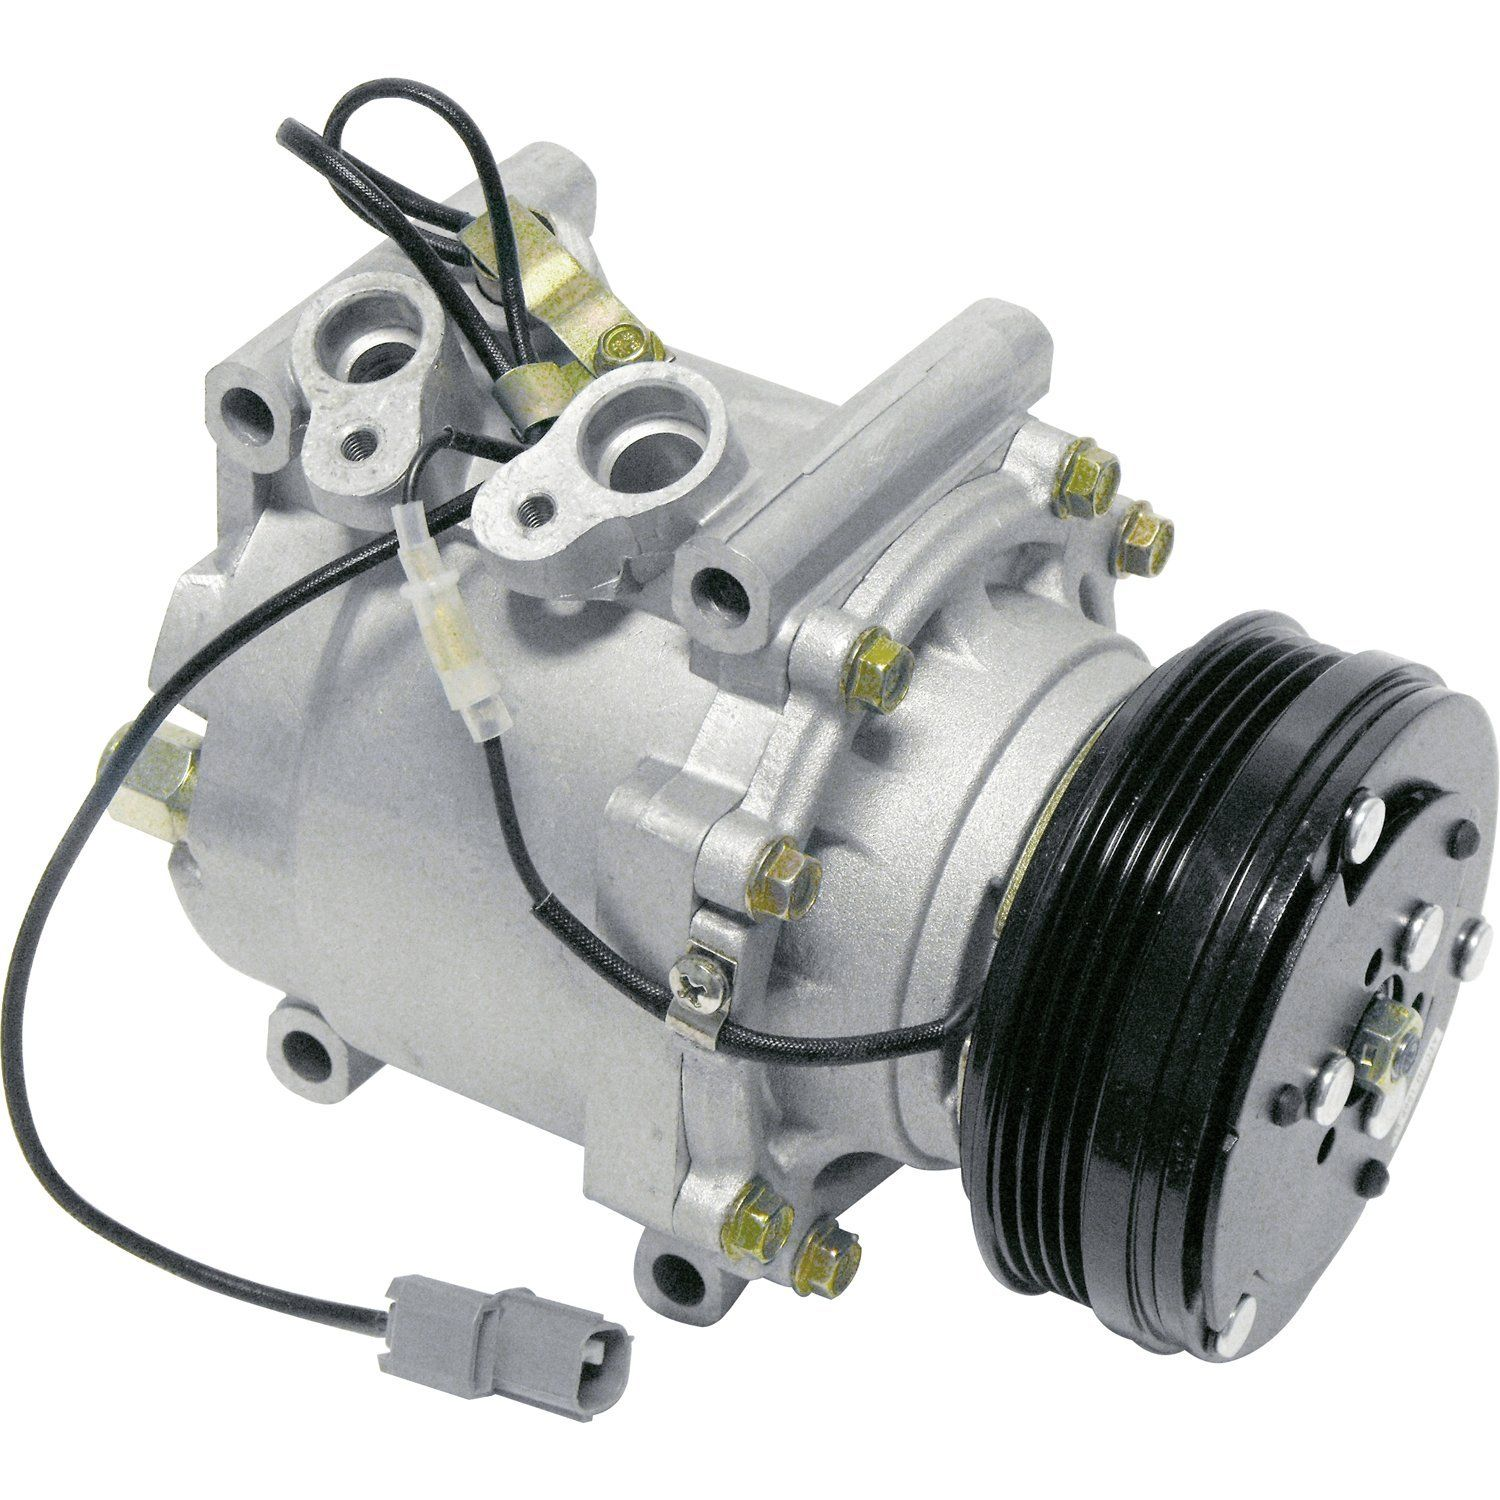 Universal Air Conditioner Compressor, CO 3057AC Honda